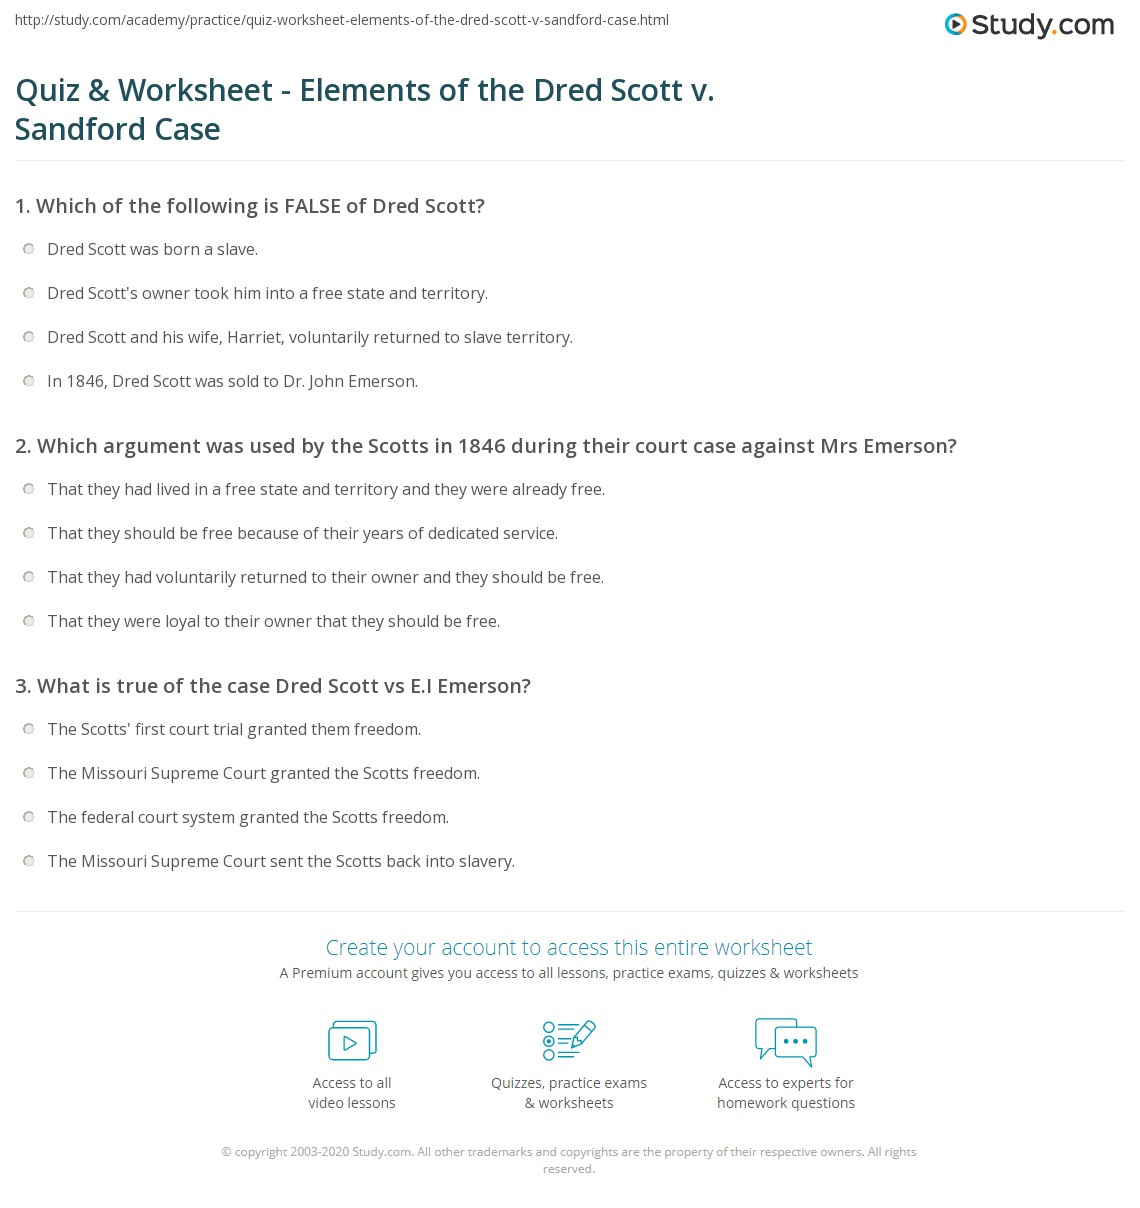 worksheet Dred Scott Worksheet quiz worksheet elements of the dred scott v sandford case print sanford summary decision worksheet